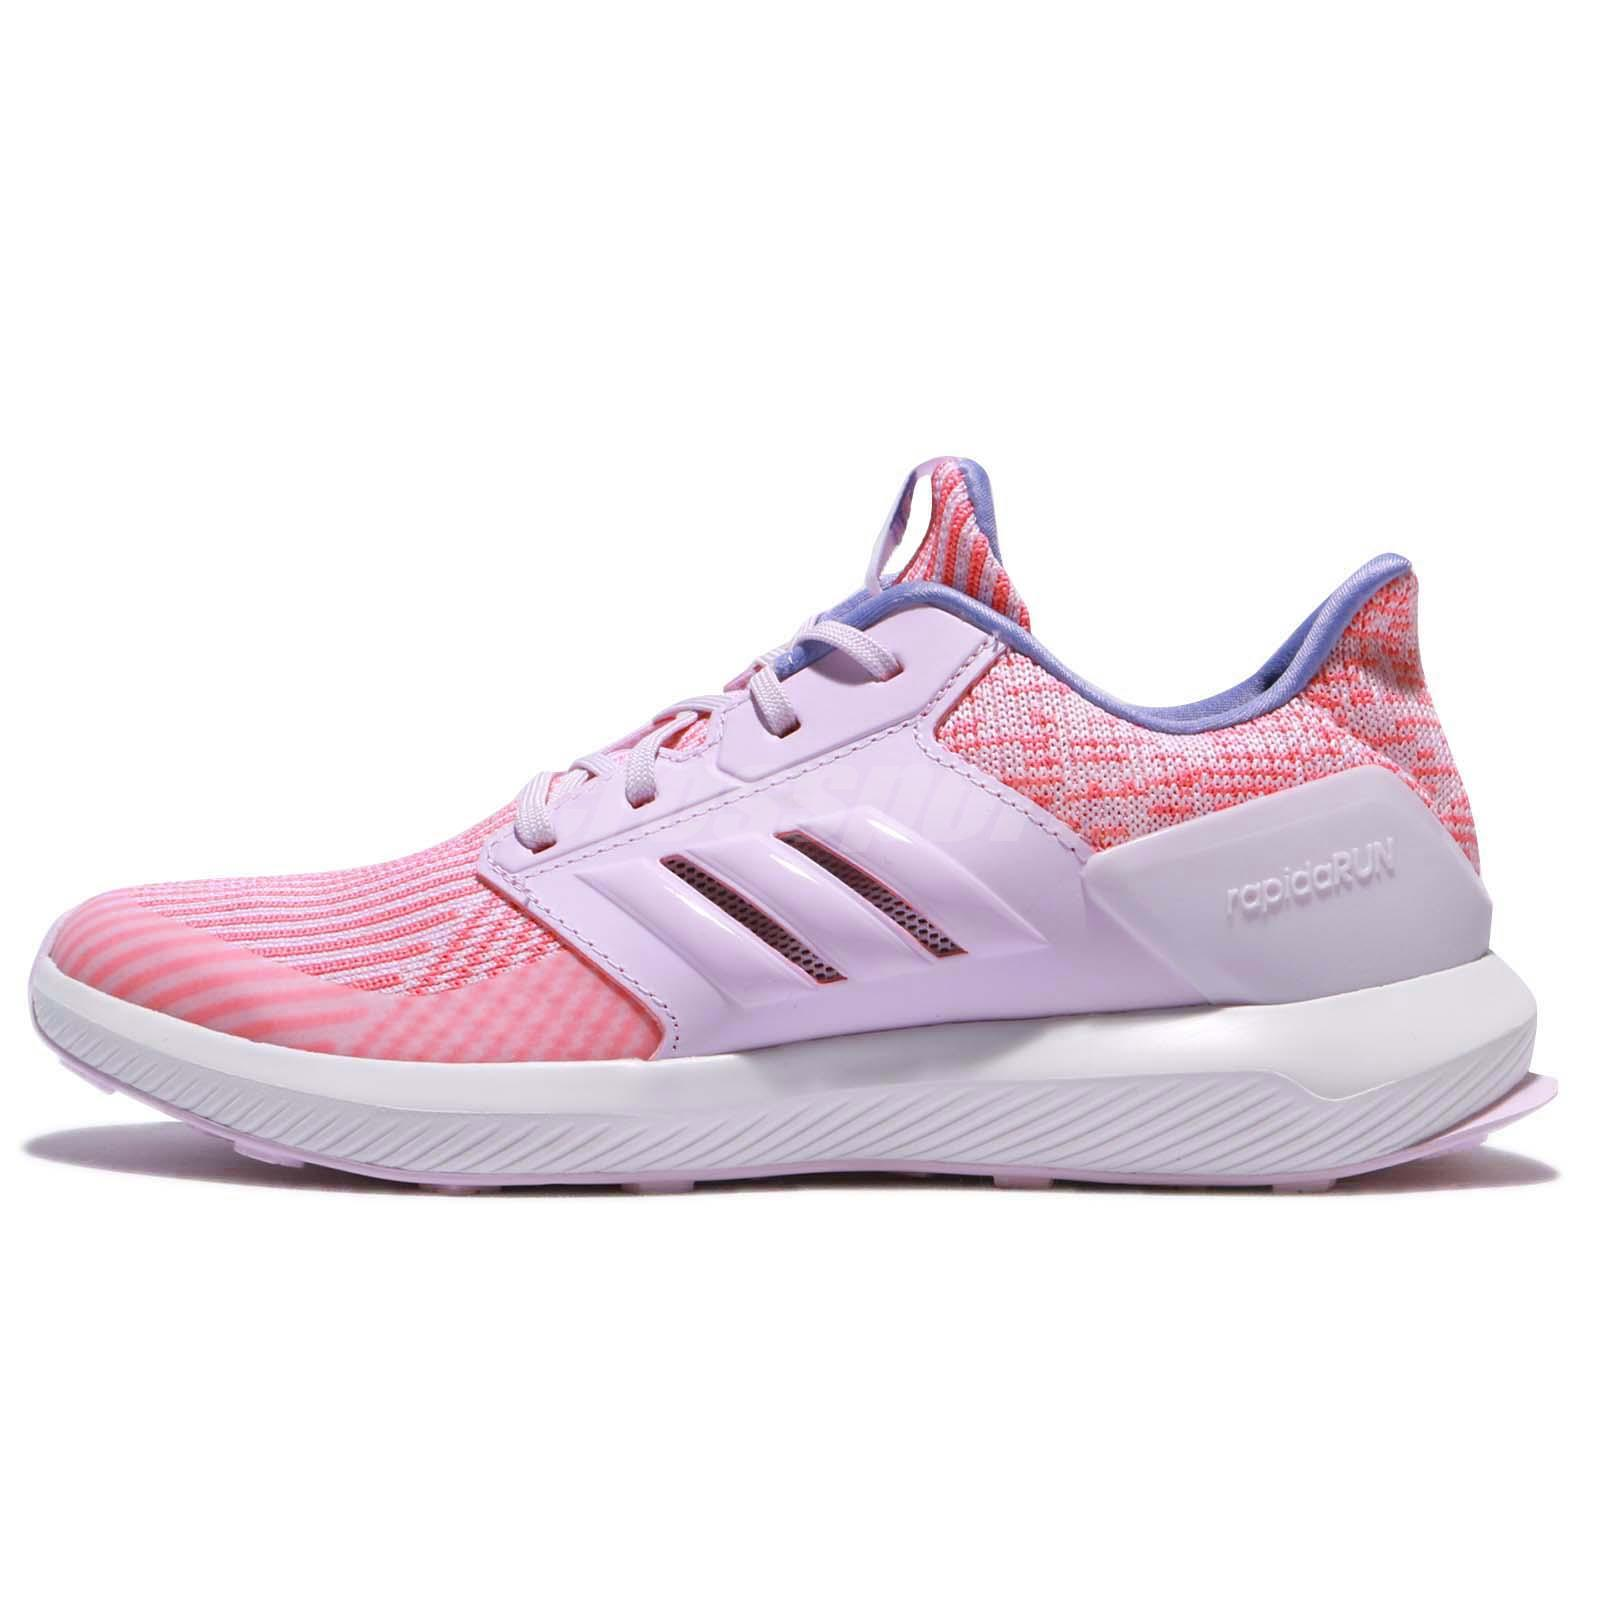 adidas RapidaRun Knit J Pink Blue Kids Running Shoes Sneakers DB0216